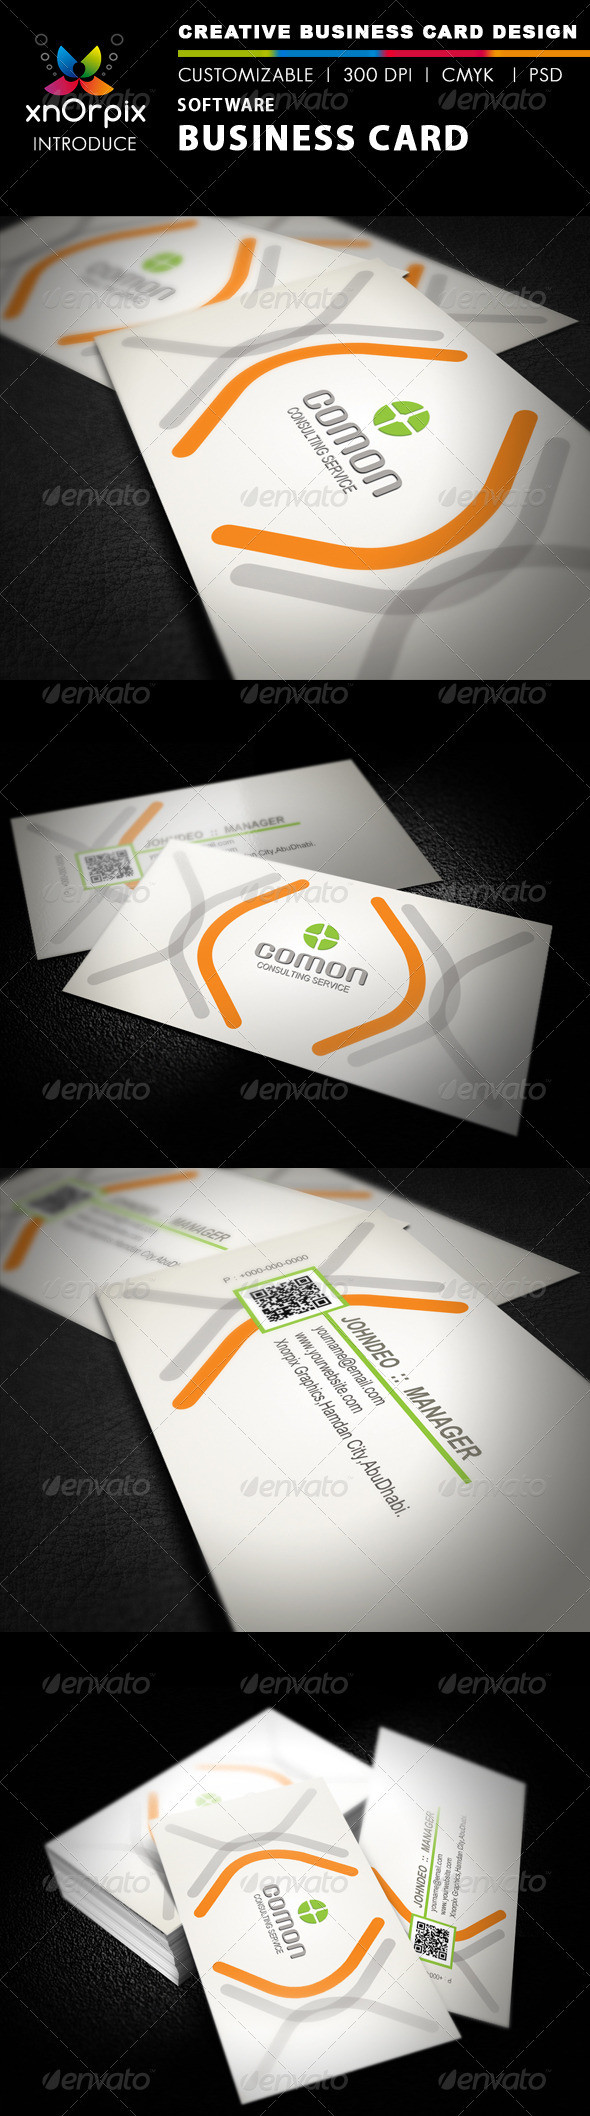 Software Business Card - Business Cards Print Templates